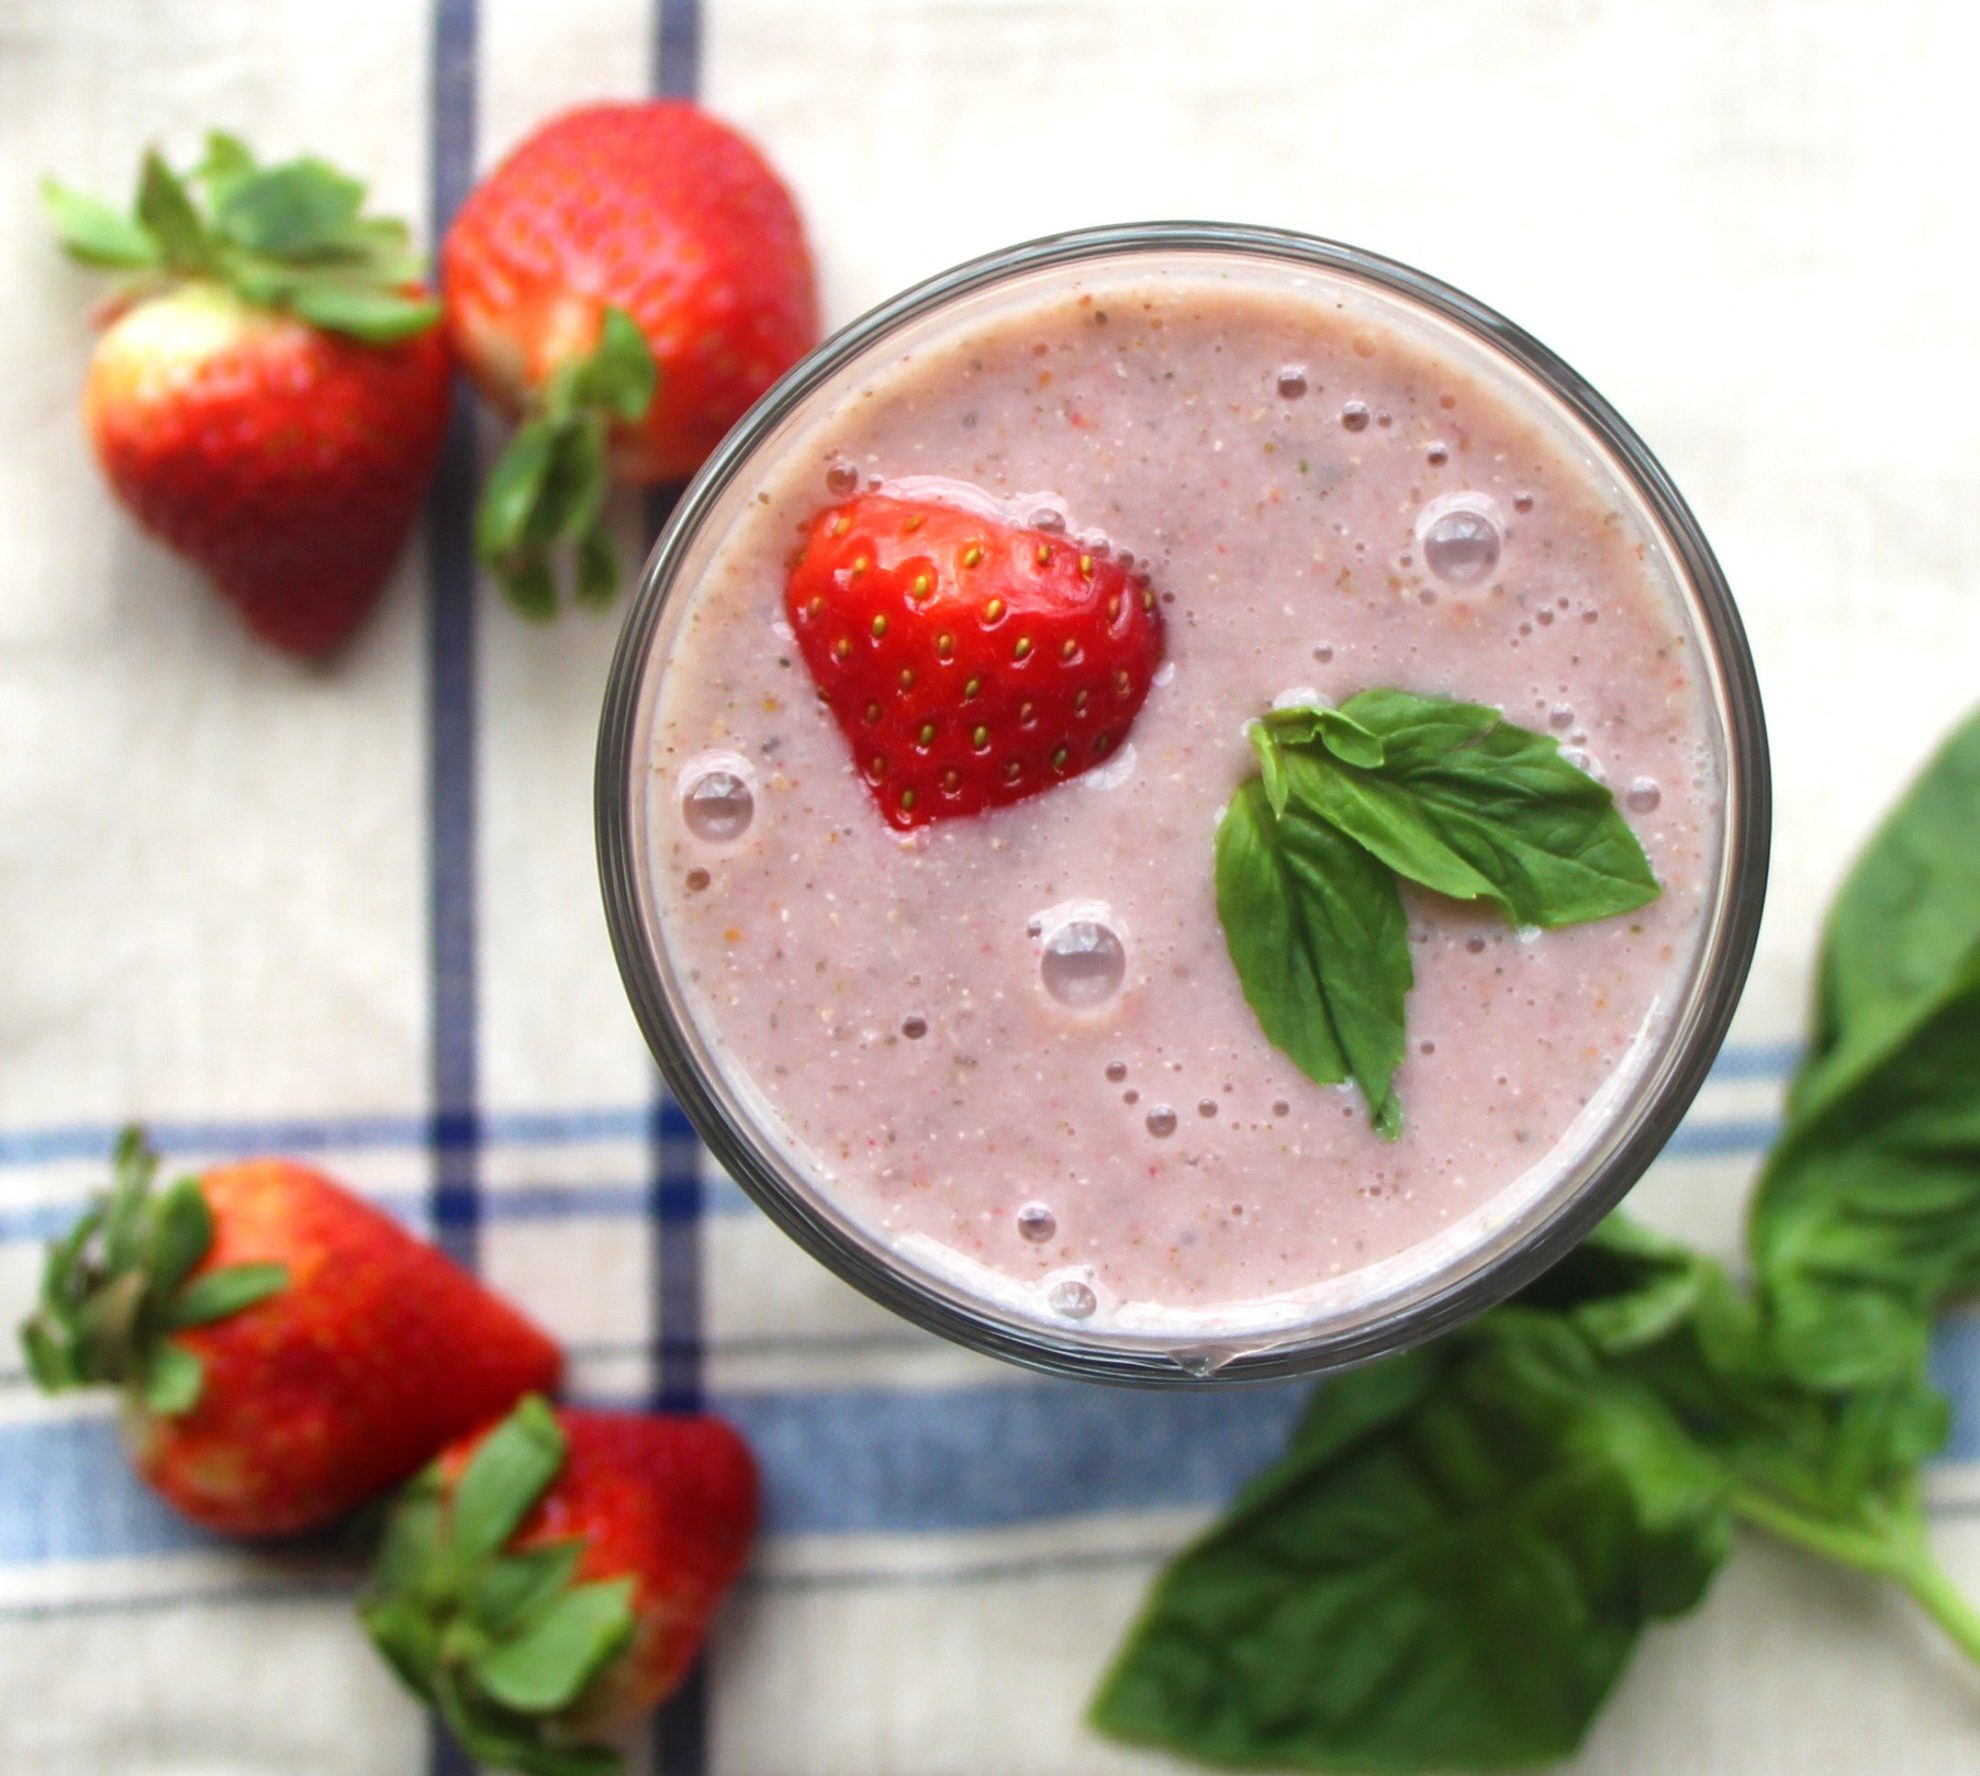 Smoothie photo shows how to improve food photography for your food blog photos